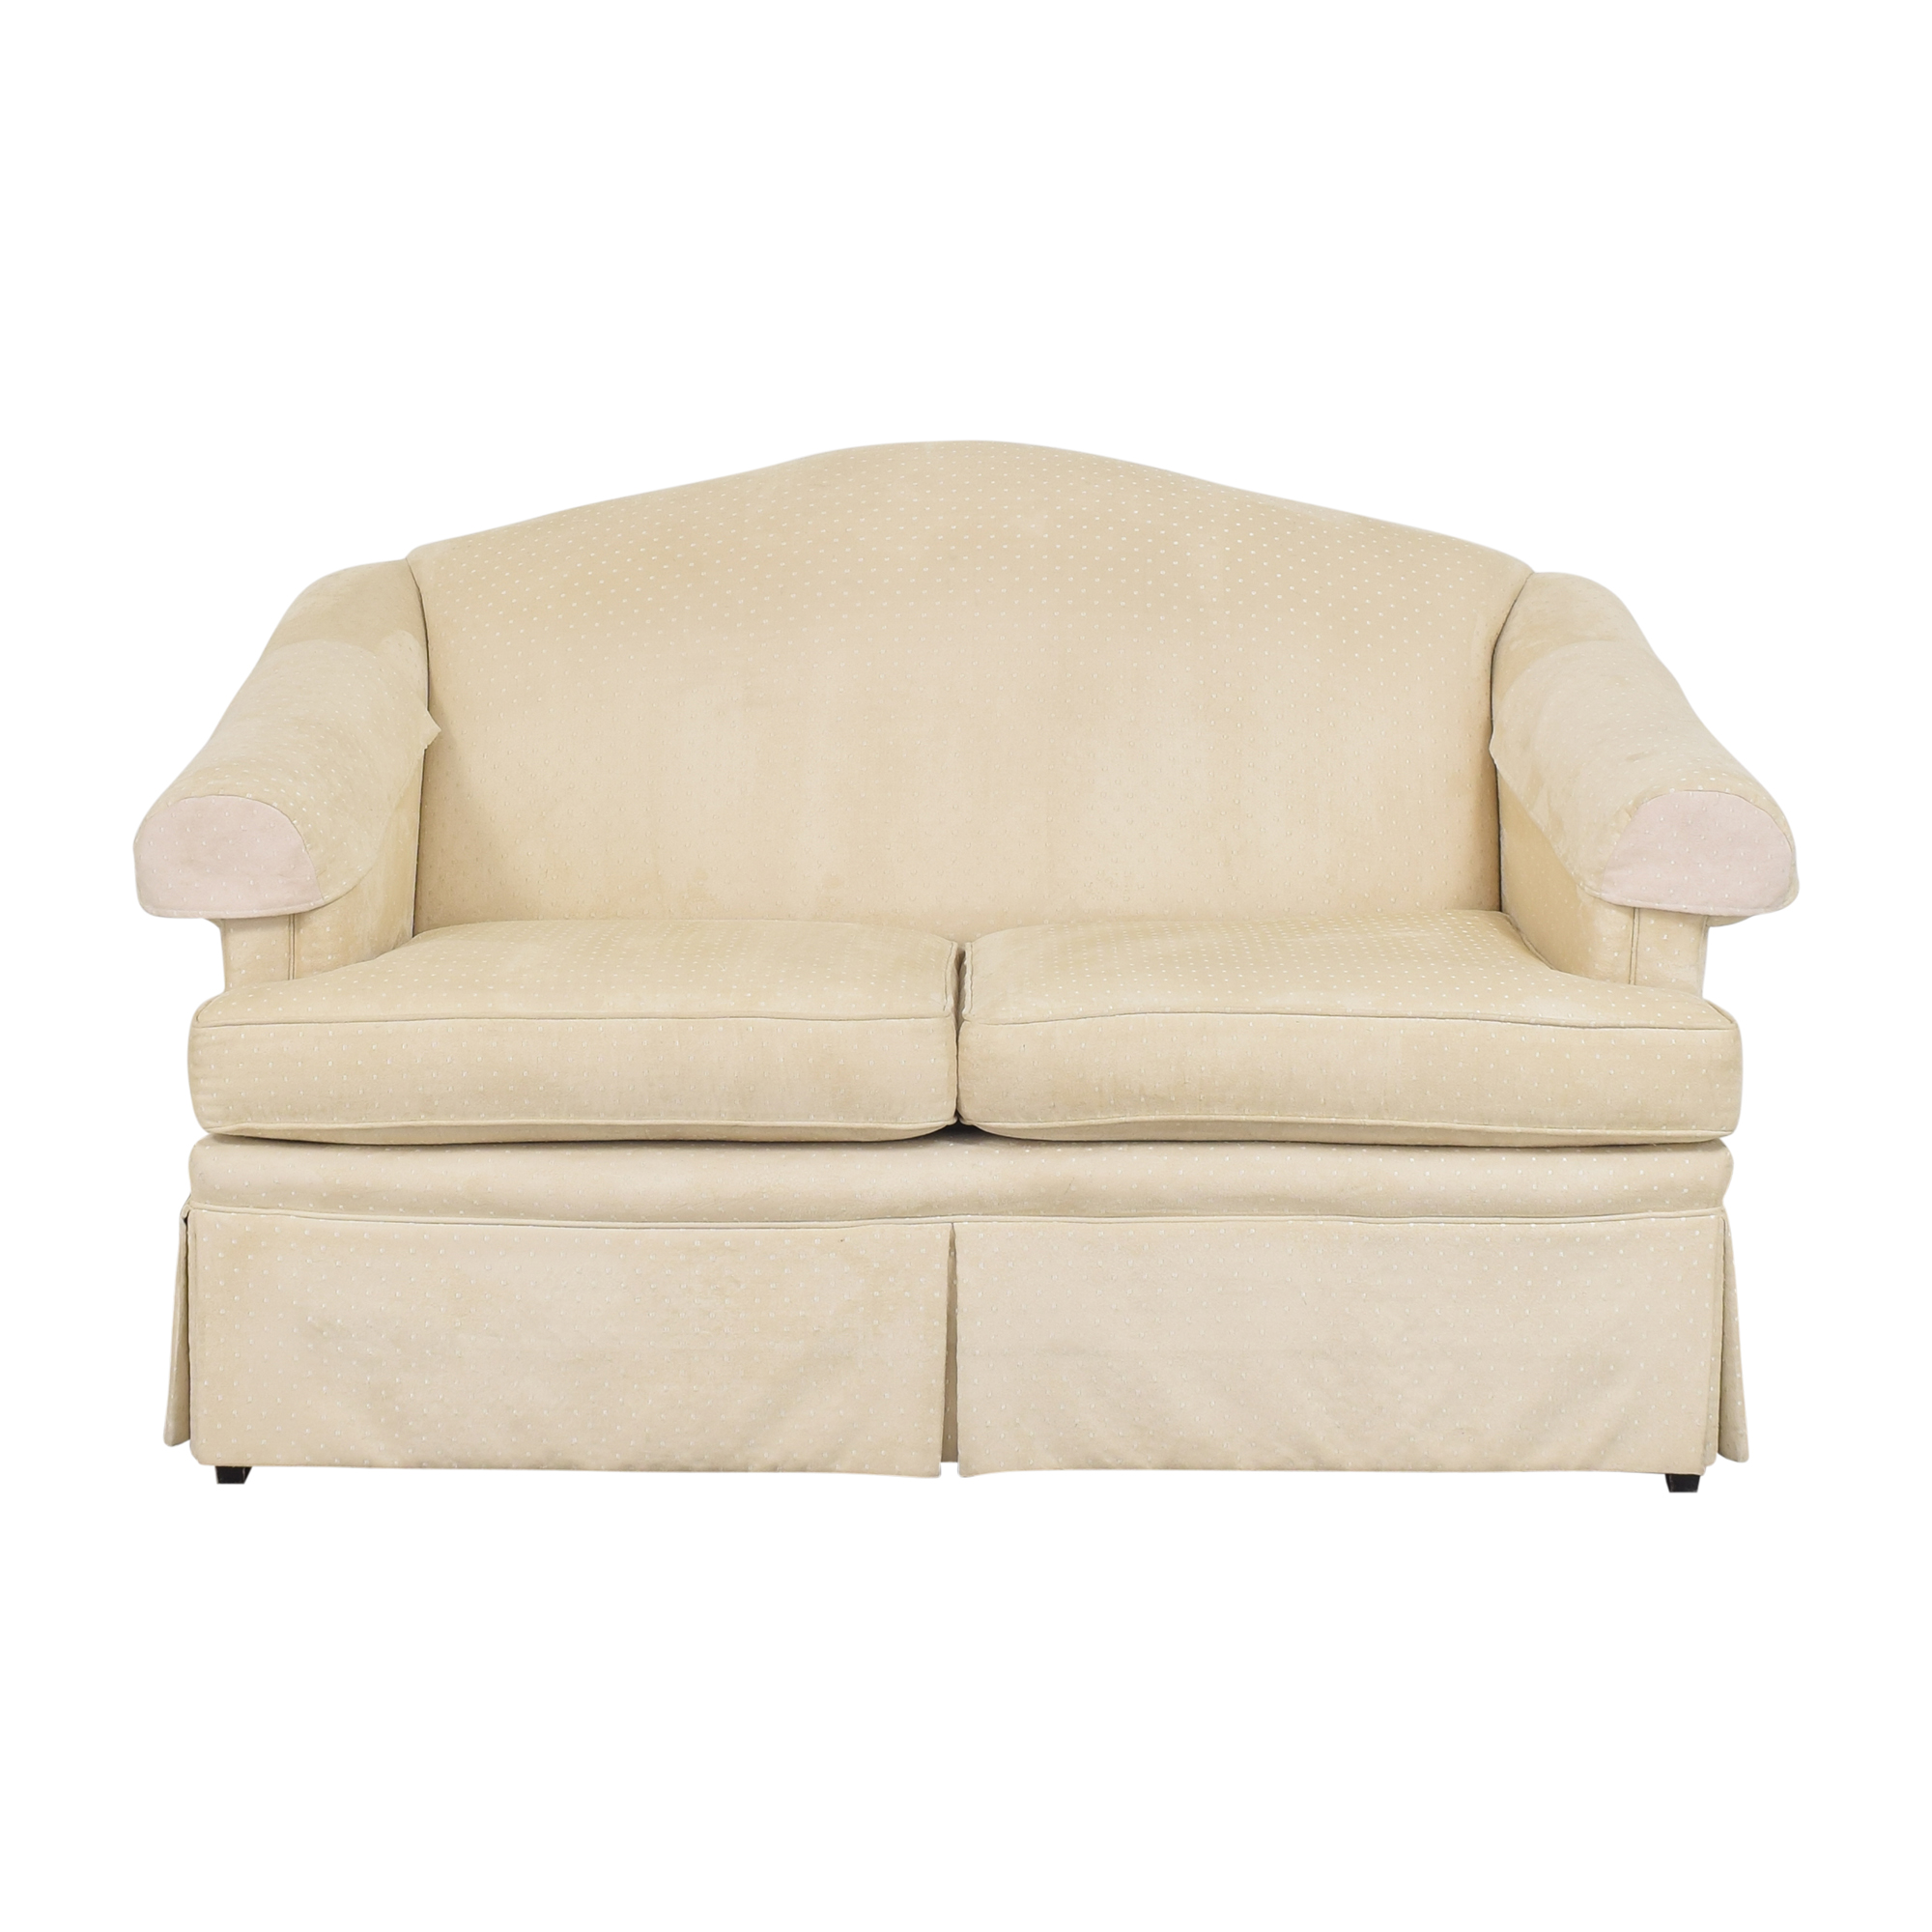 Parker House Furniture Parker House Furniture Camelback Loveseat Sofas